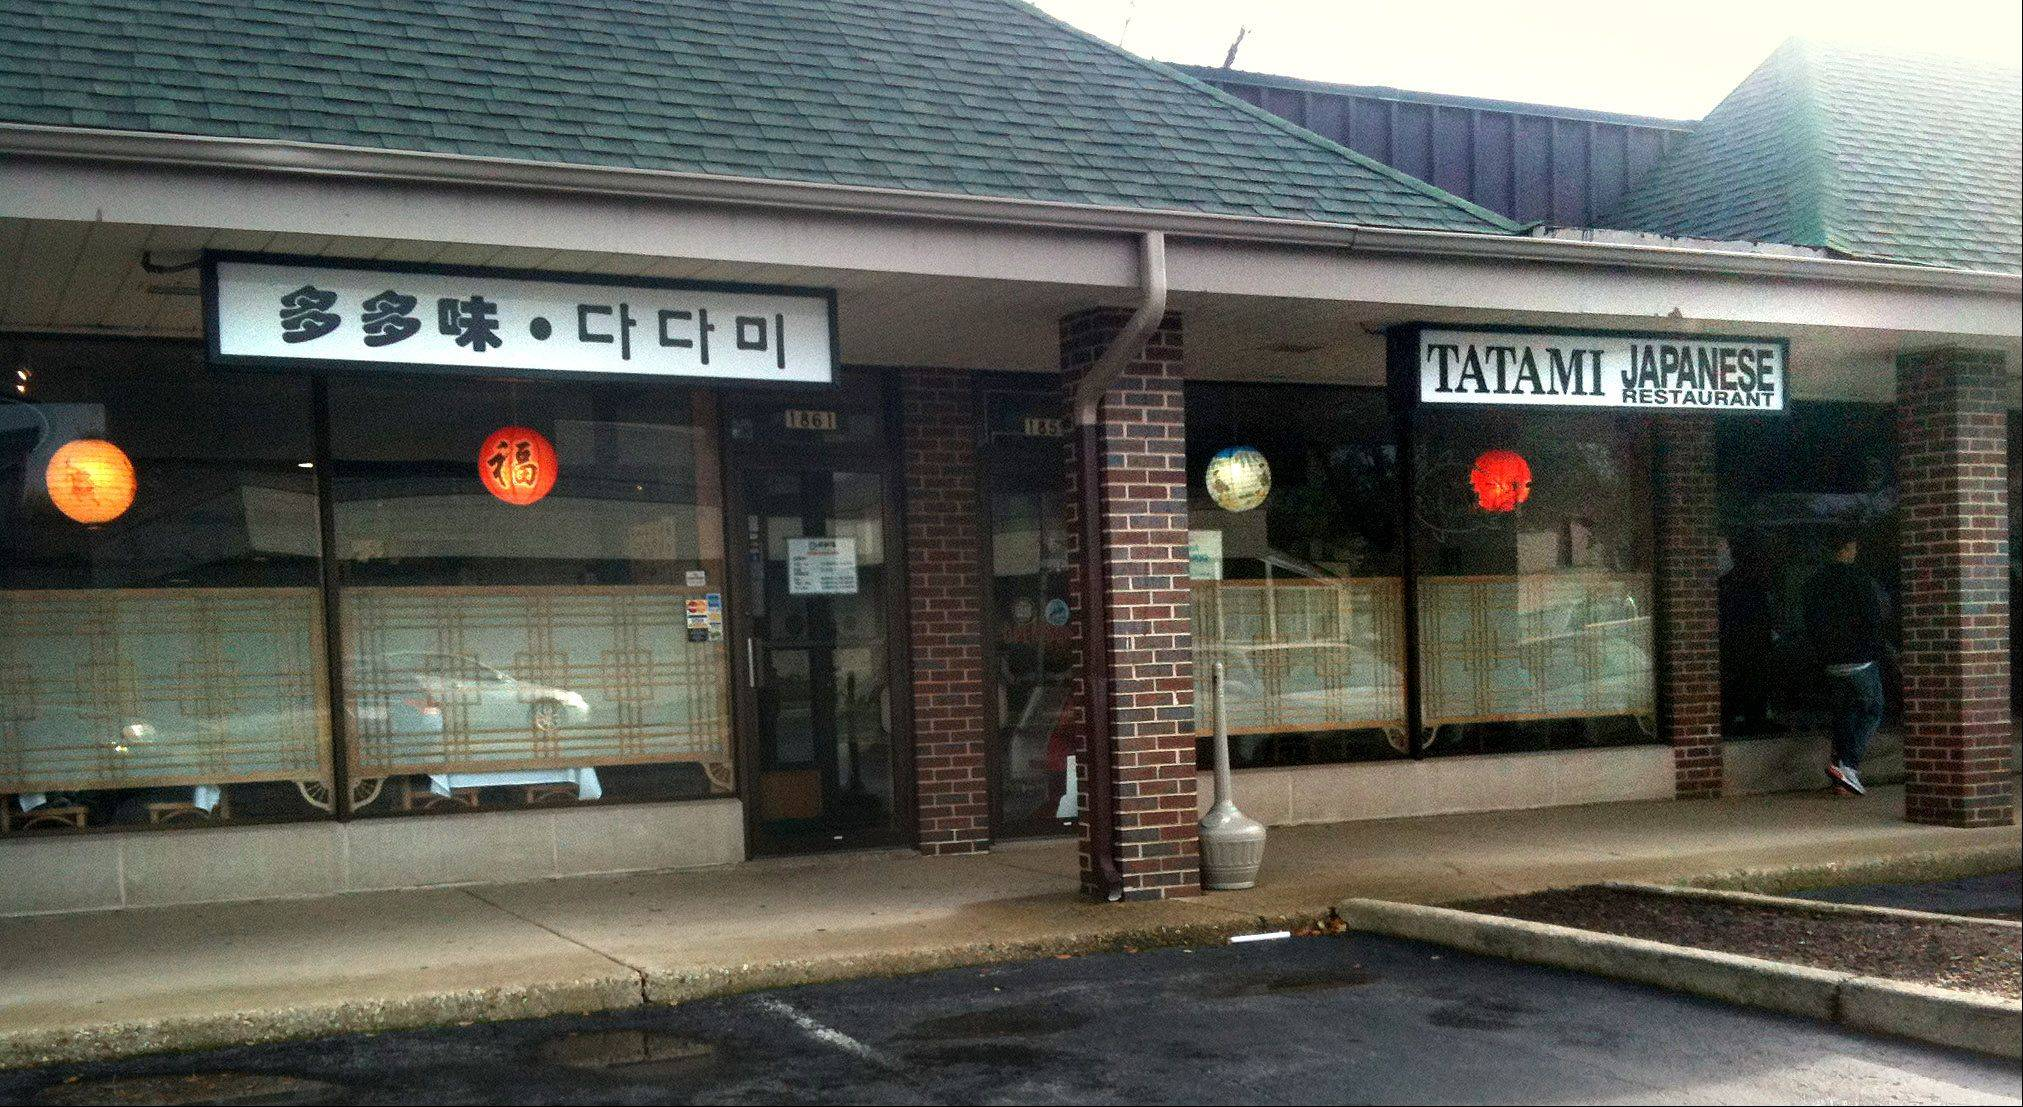 Police say Dong (Donna) Yu, the Prospect Heights woman found shot to death at her home Monday, was killed by Keon Suk Oh, her boss at Tatami Japanese Restaurant in Glenview. Authorities say Oh then killed himself.